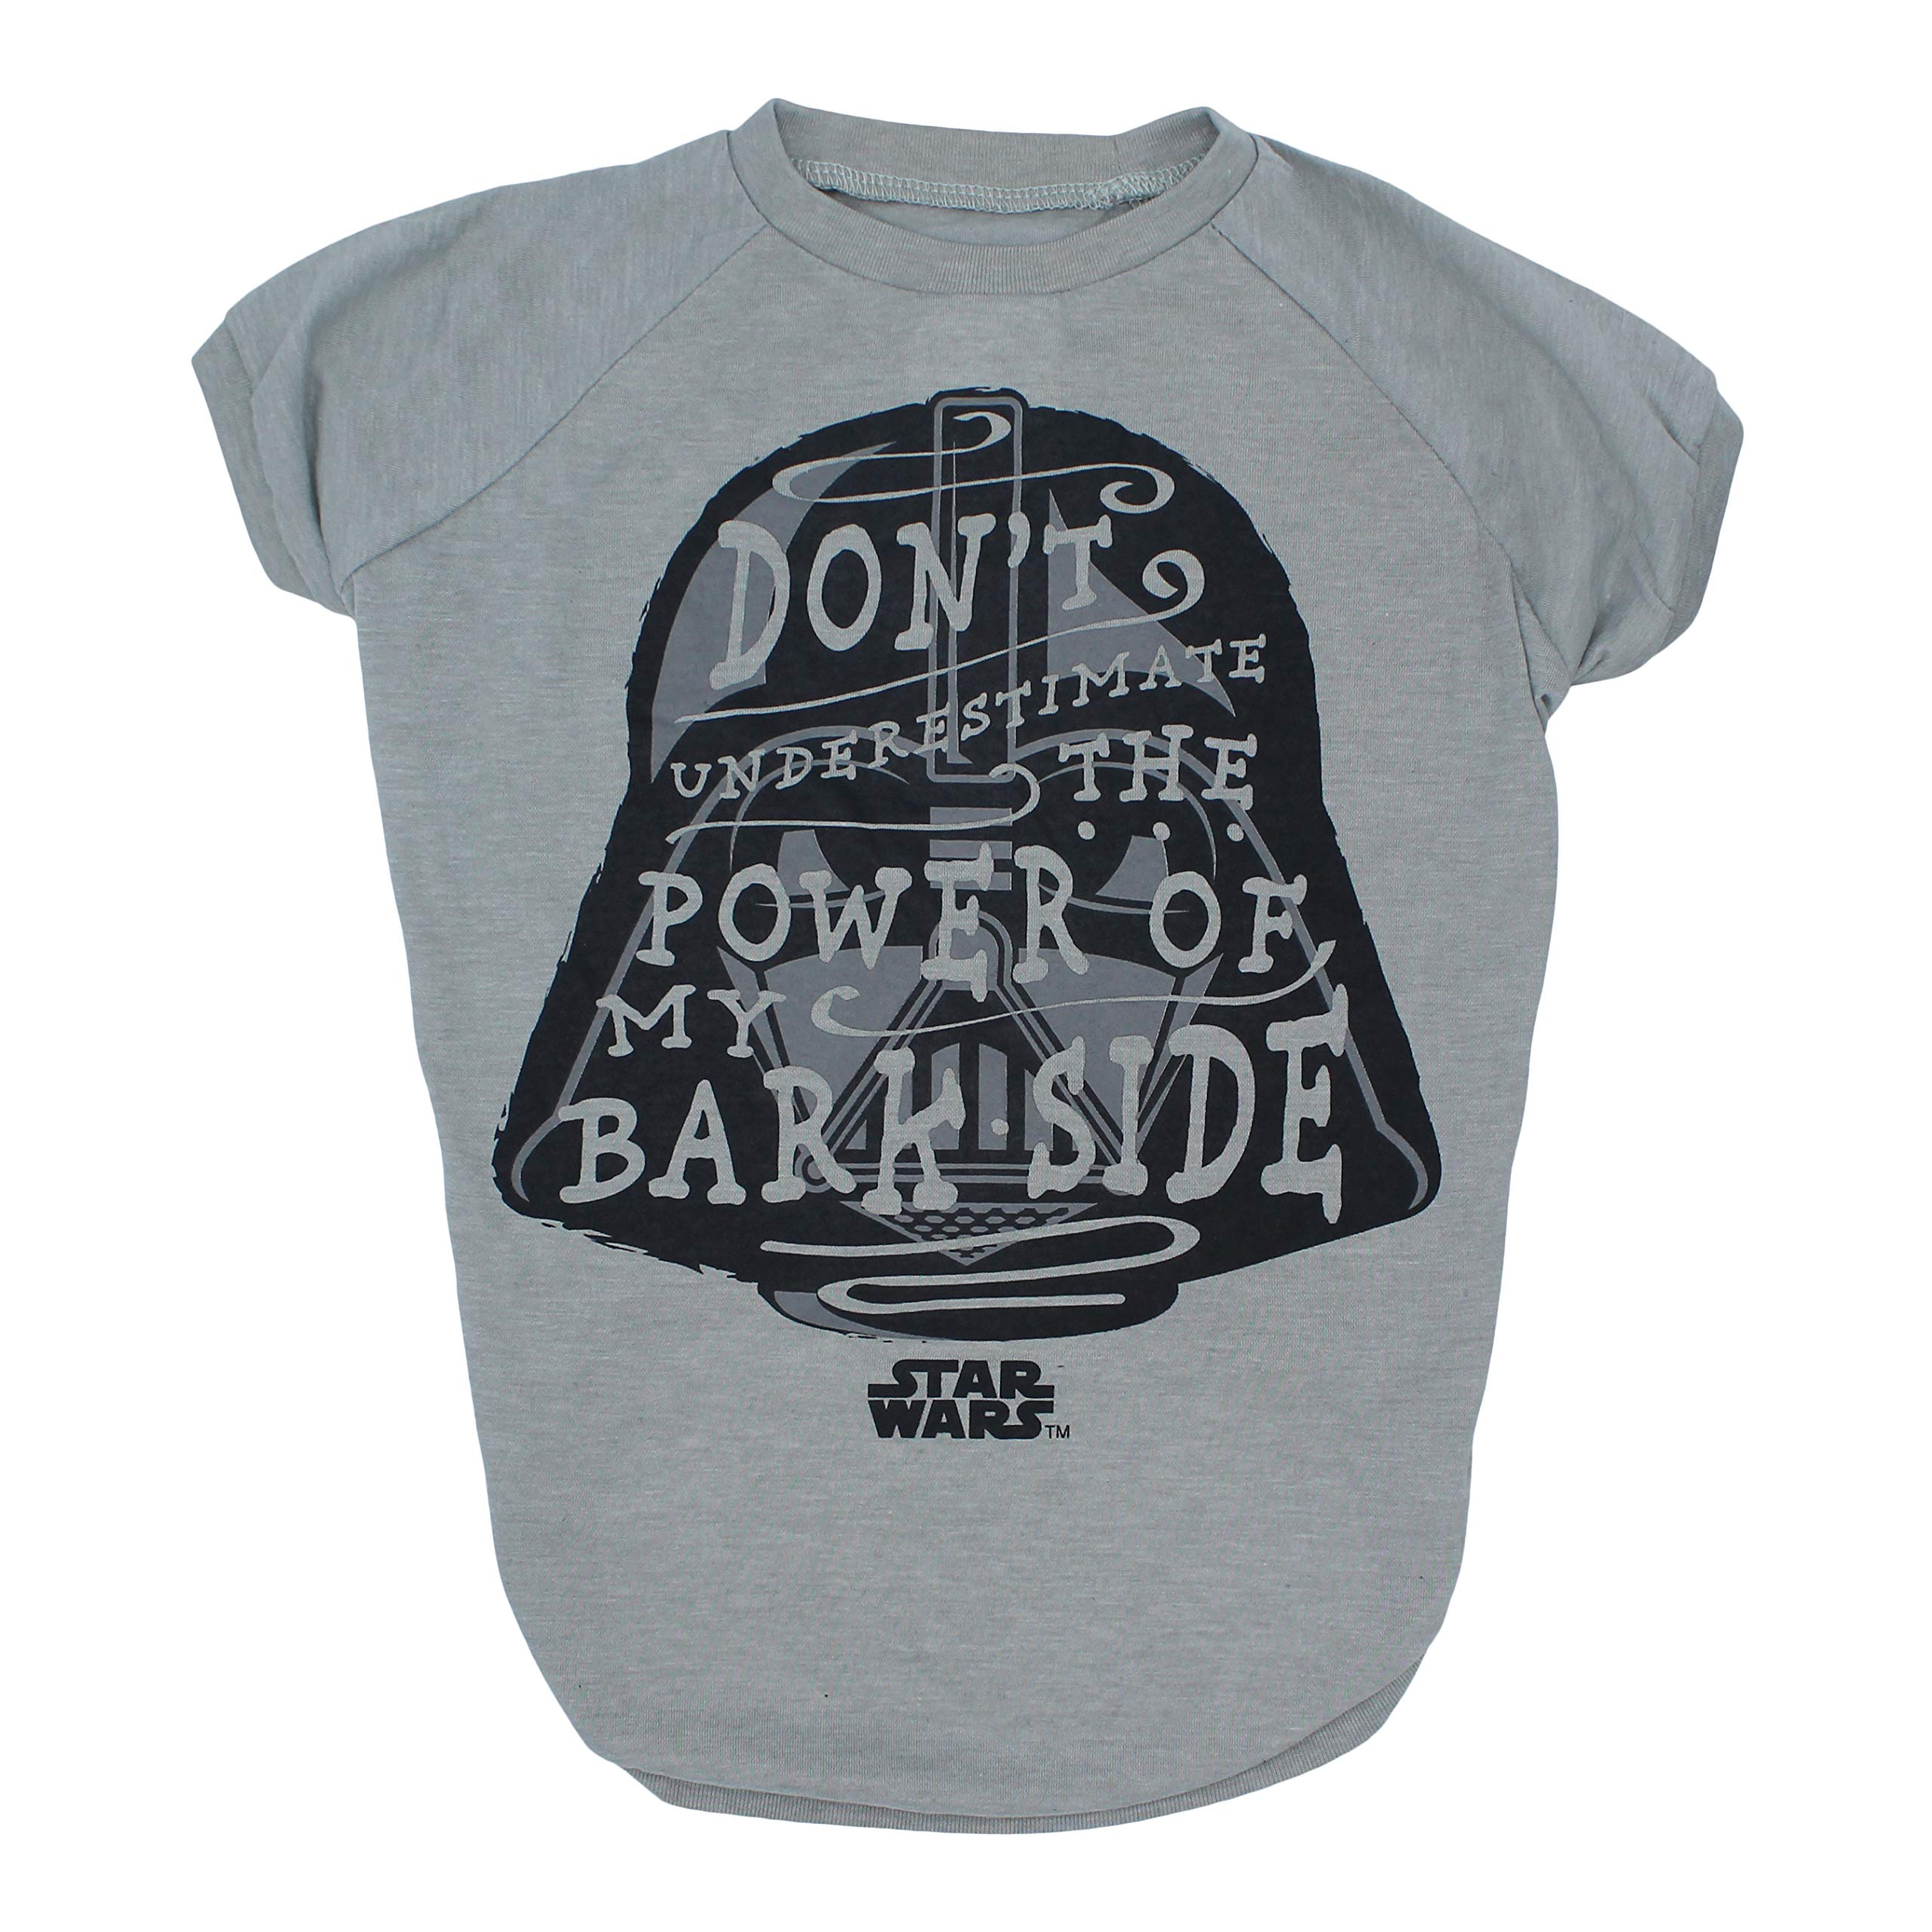 Star Wars for Pets Star Wars T-Shirt for Dogs